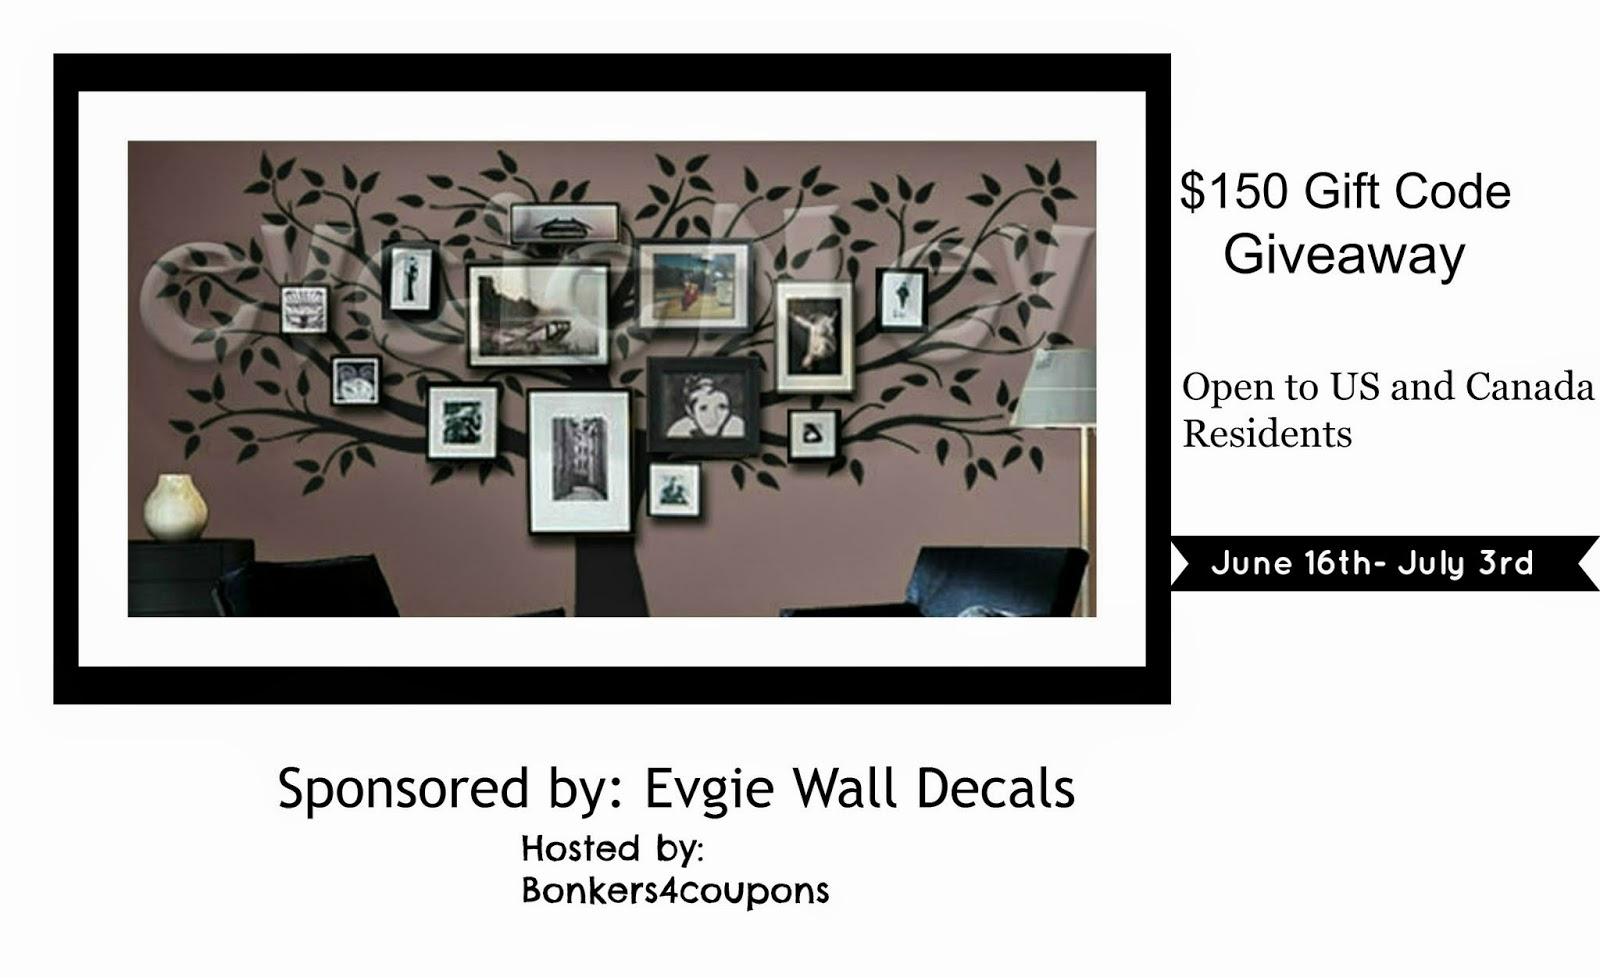 Evgie Wall Decals $150 Gift Code Giveaway